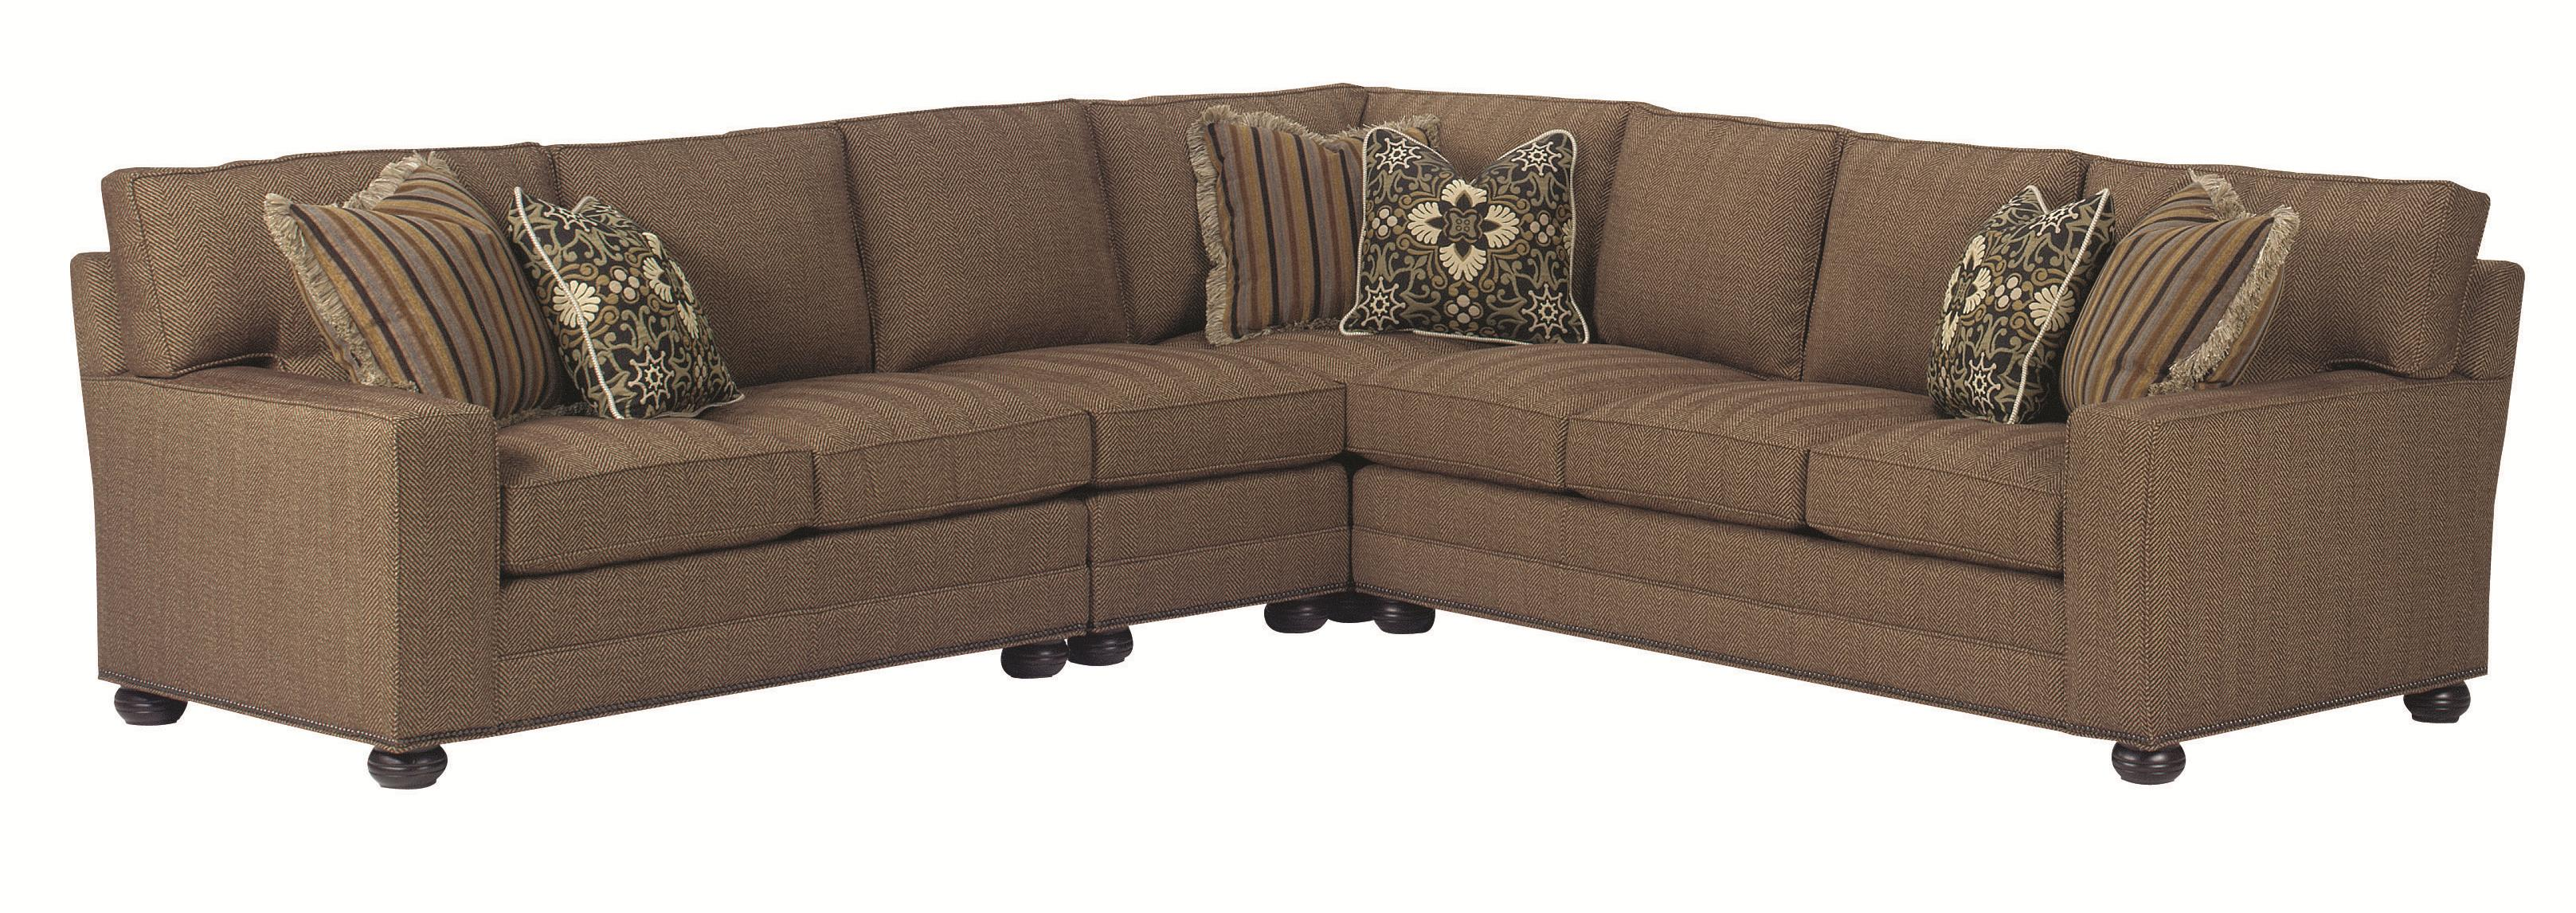 Lexington Personal Design Series Customizable Upholstered Norwood Sectional Baer 39 S Furniture